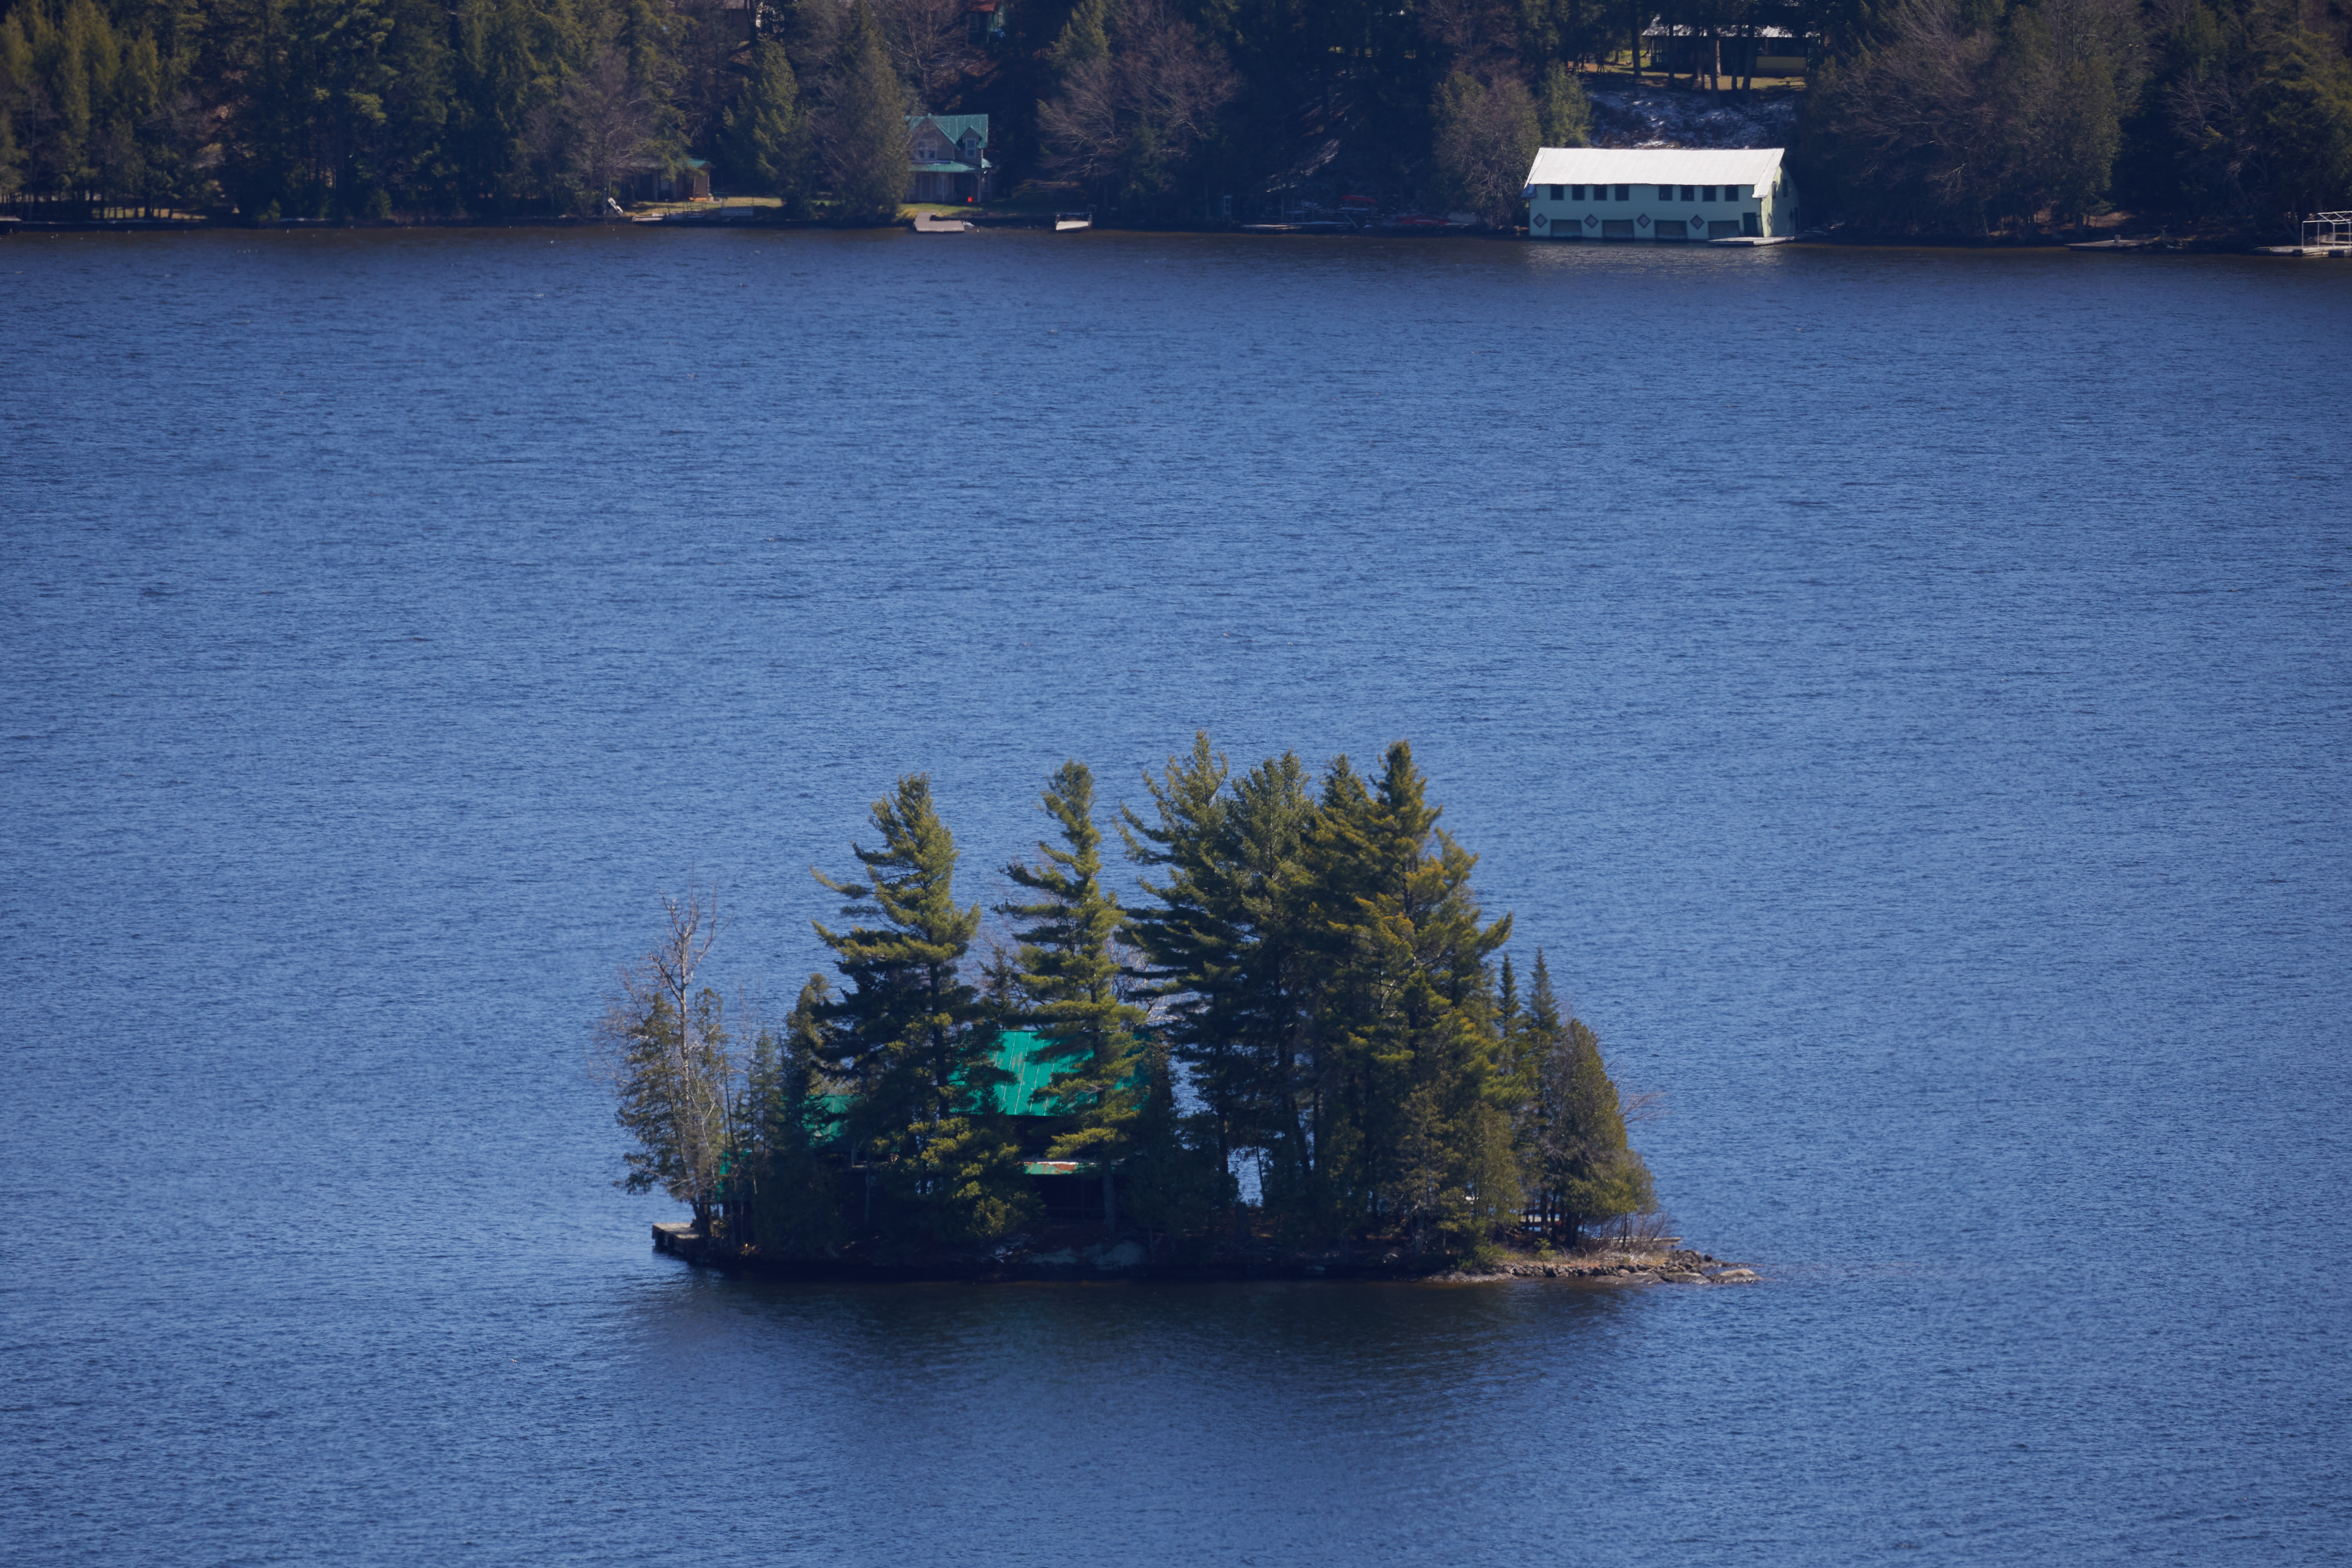 View of small island in lake with house on it.